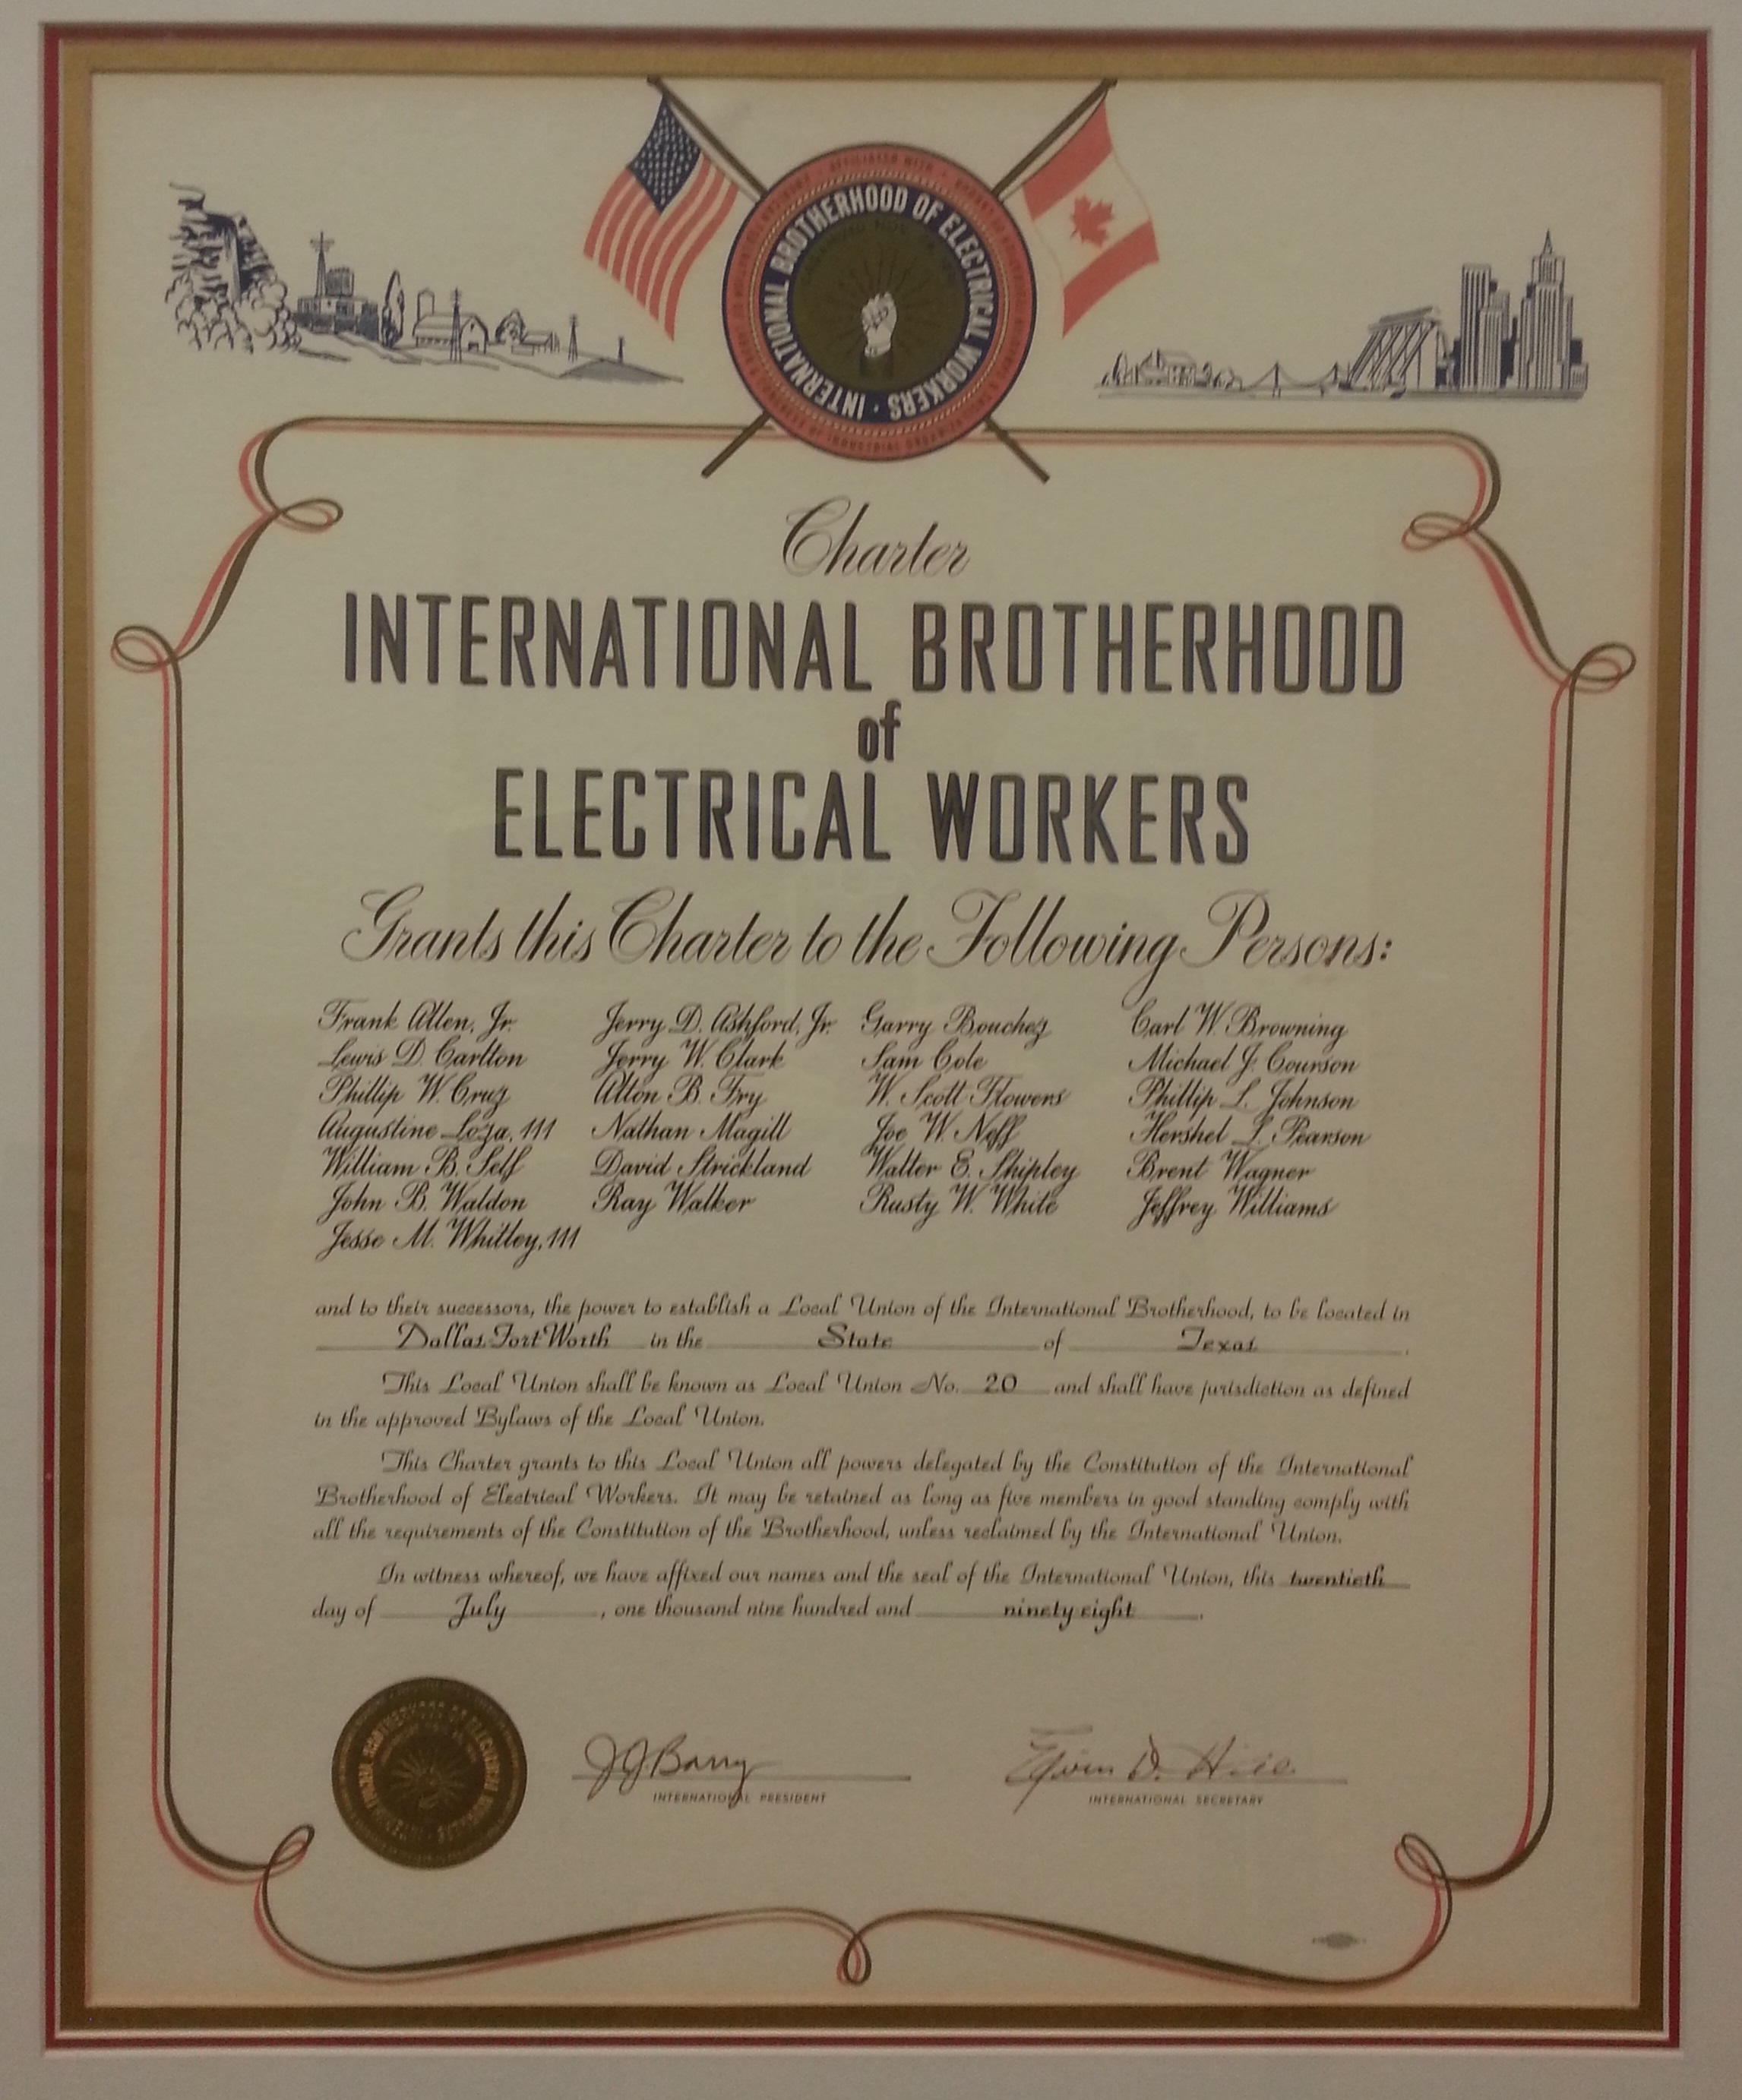 Picture of the original Charter of IBEW Local 20